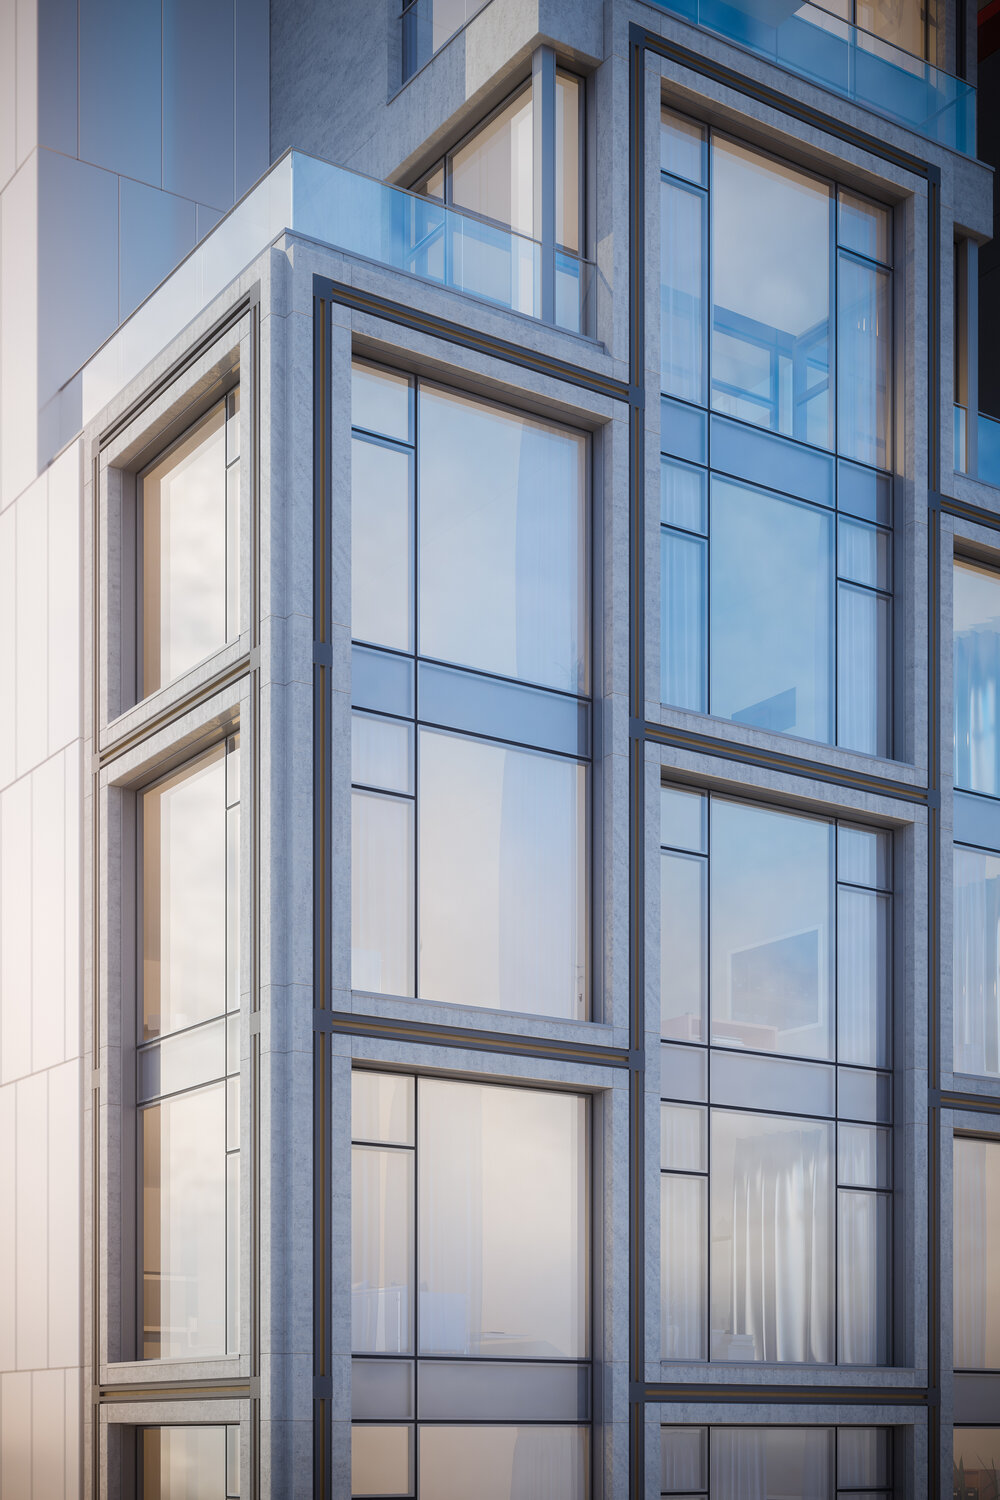 Rendering of 1009 Second Avenue facade - Issac & Stern Architects